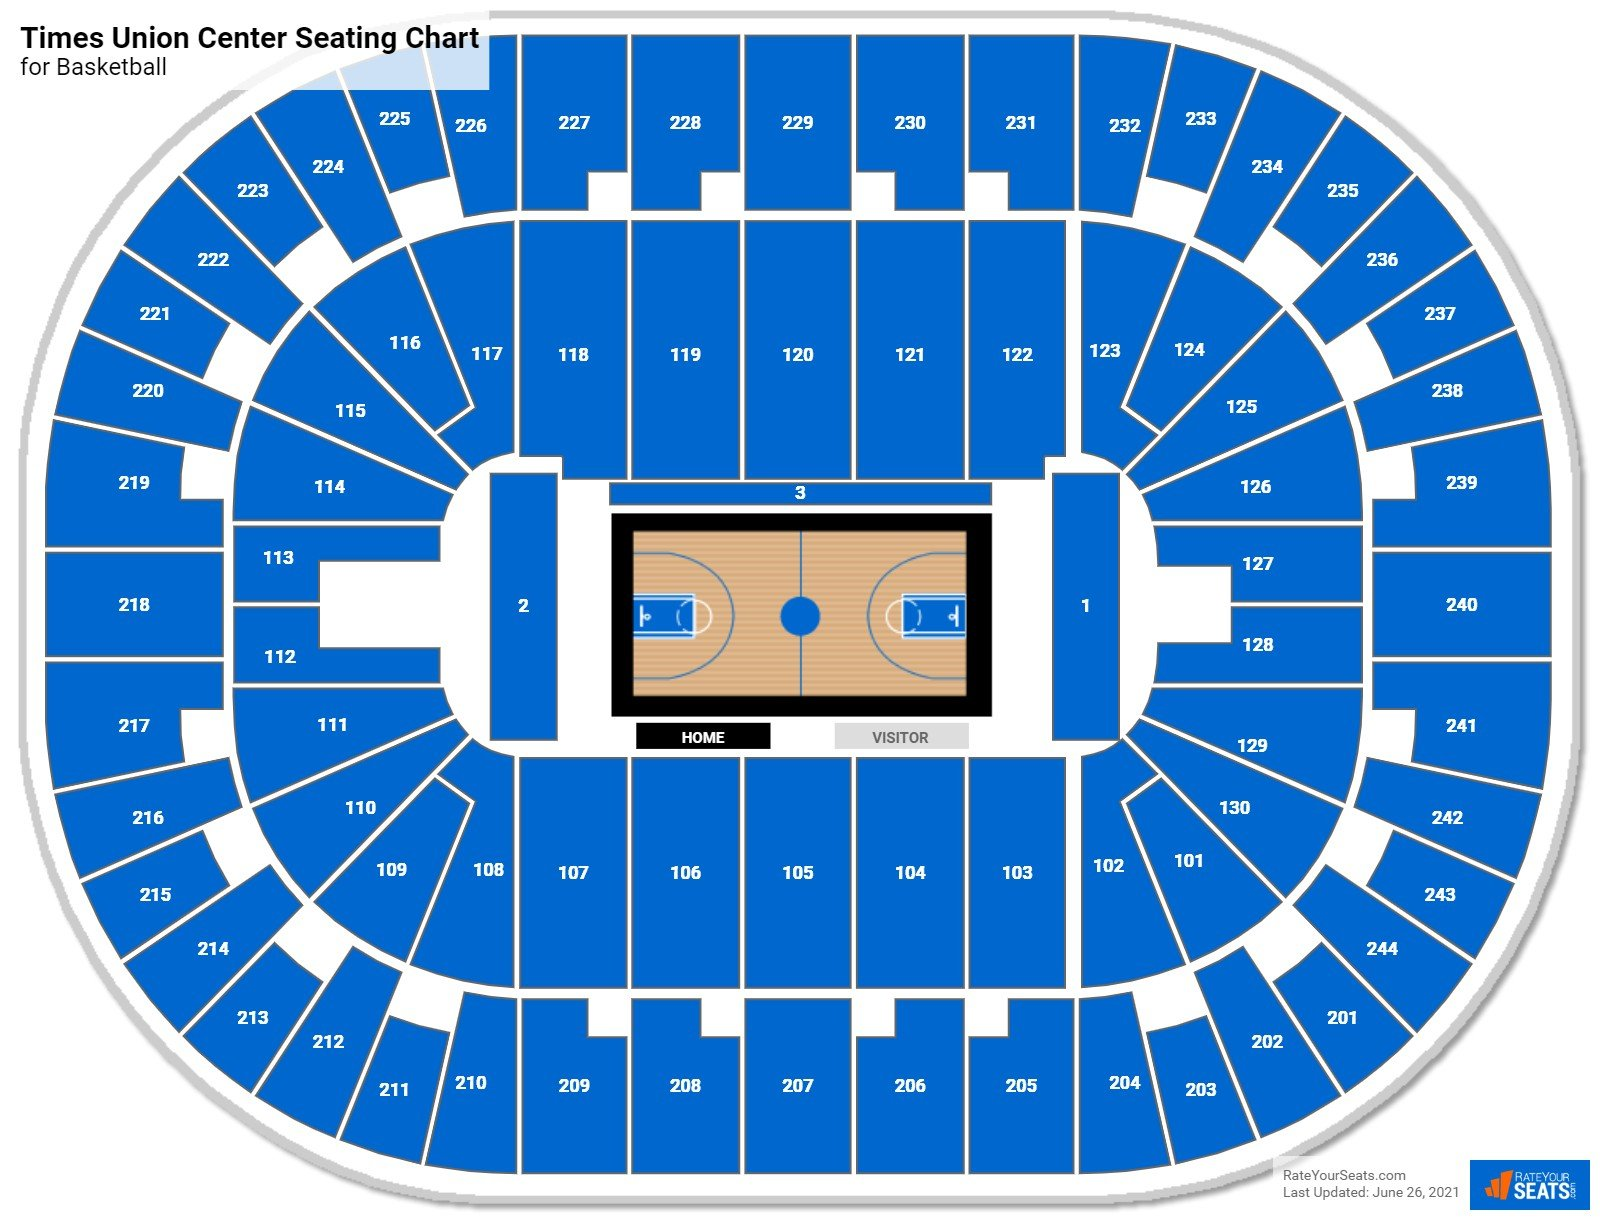 Times Union Center Seating Chart for Basketball